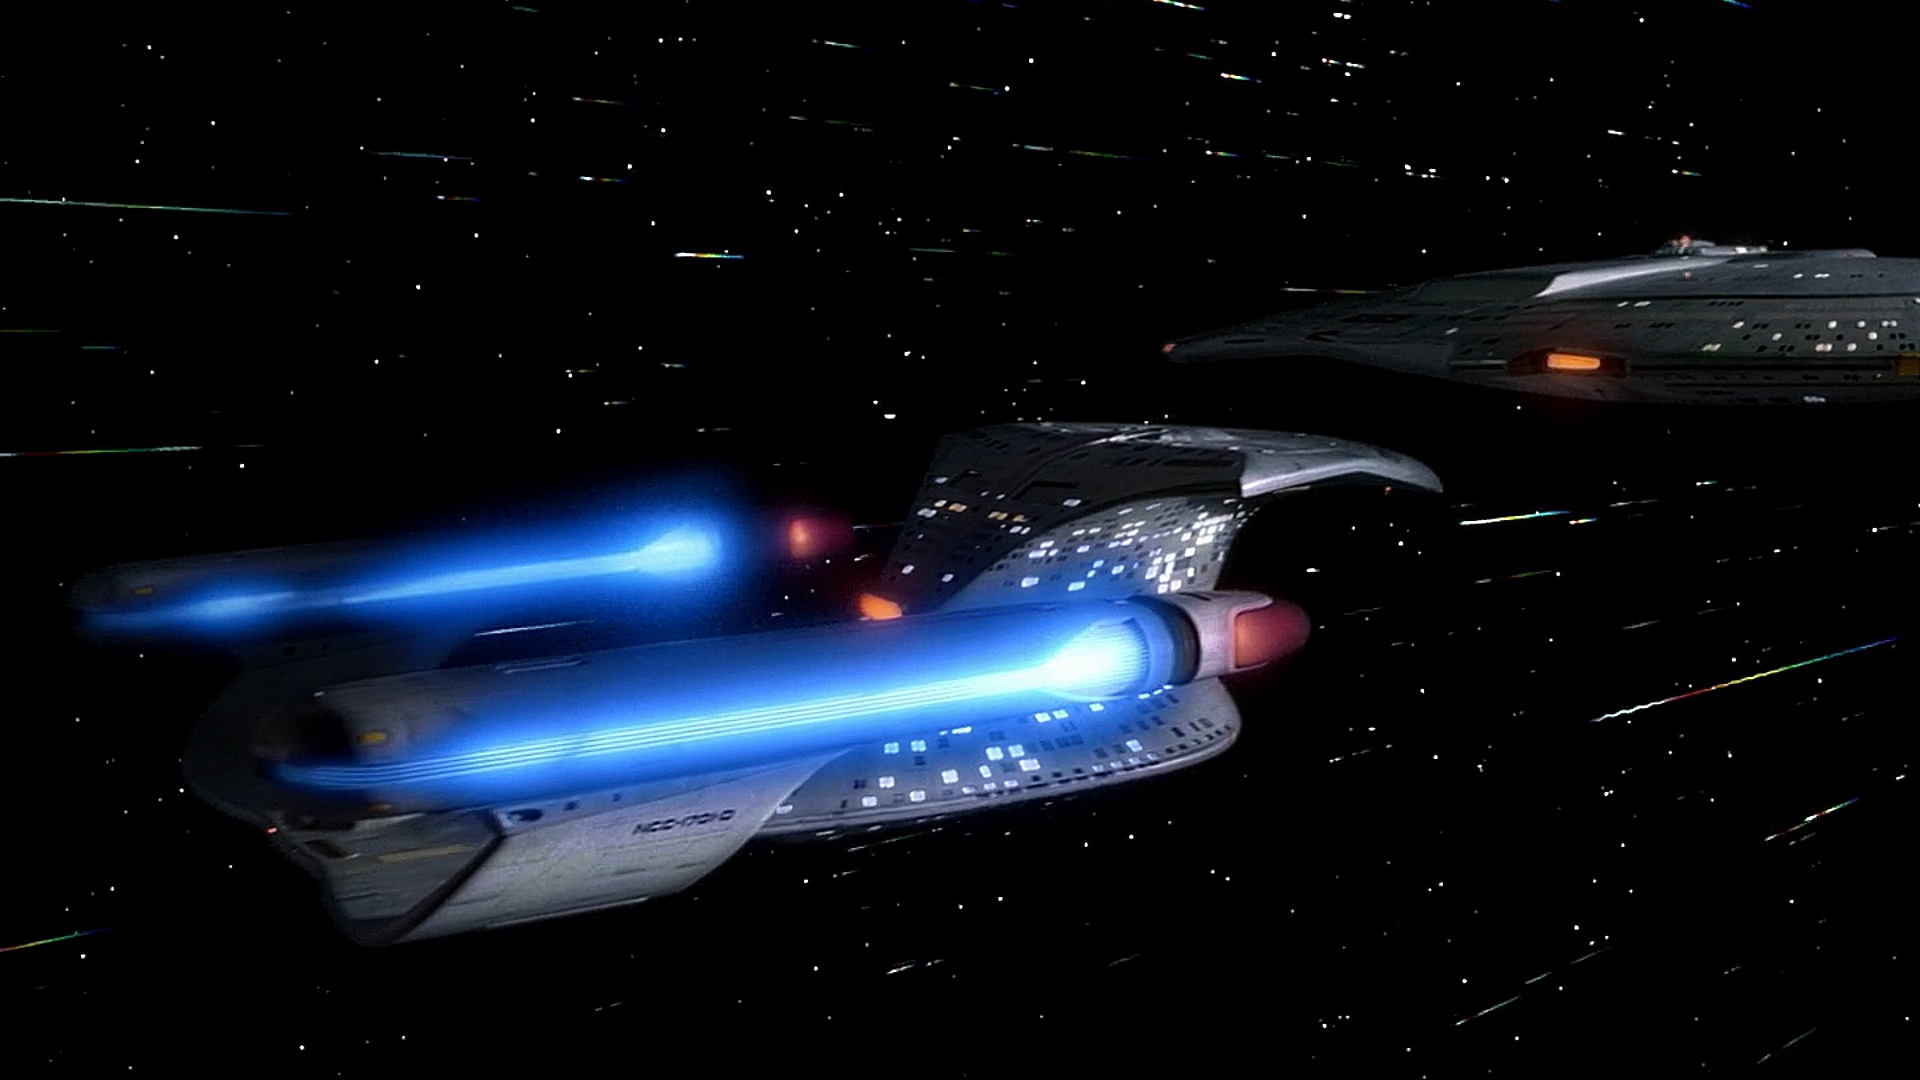 Star Trek The Next Generation Full Hd Wallpaper And HD Wallpapers Download Free Images Wallpaper [1000image.com]